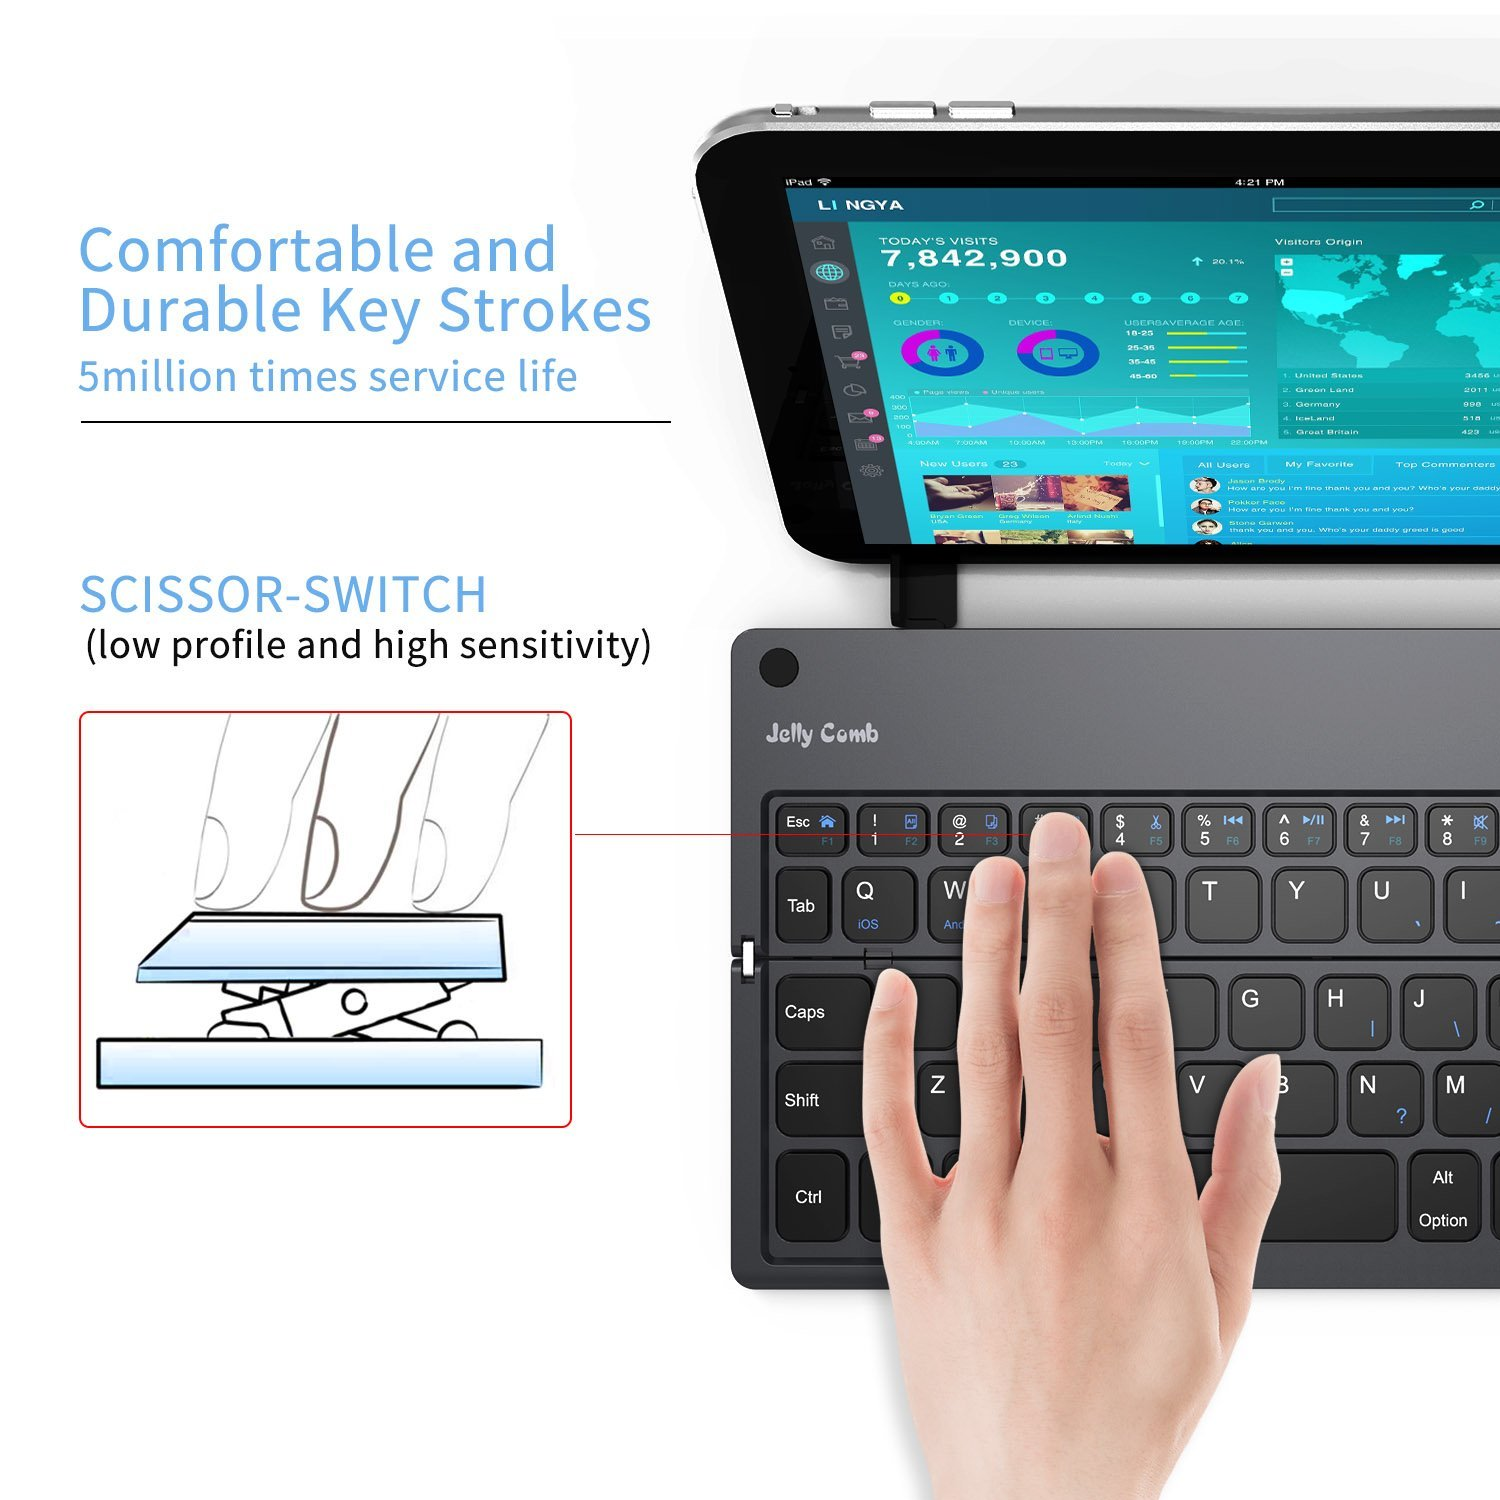 Foldable Bluetooth Keyboard, Jelly Comb B028 Portable Folding Rechargeable Bluetooth Keyboard with Built-in Stand for Android iOS Tablet Smartphone Windows and More-(Dark Grey) by Jelly Comb (Image #3)